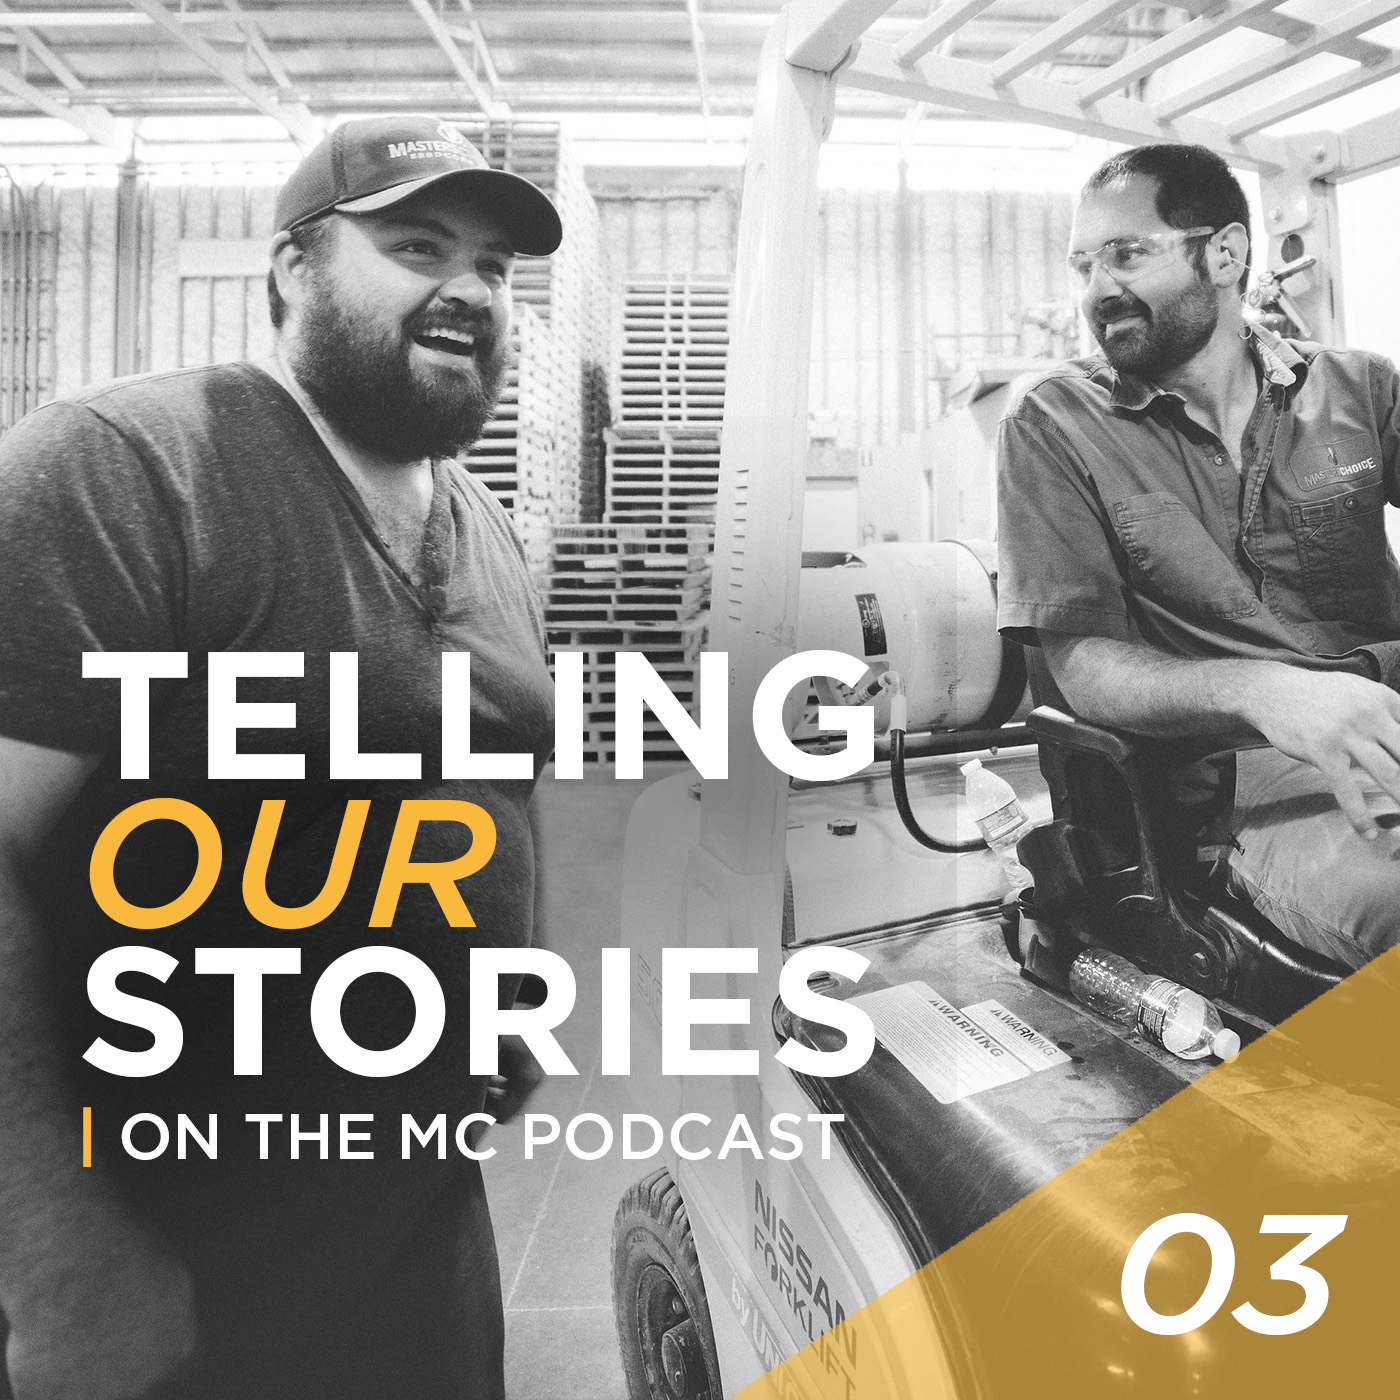 Telling Our Stories 003 - Caleb Crabtree